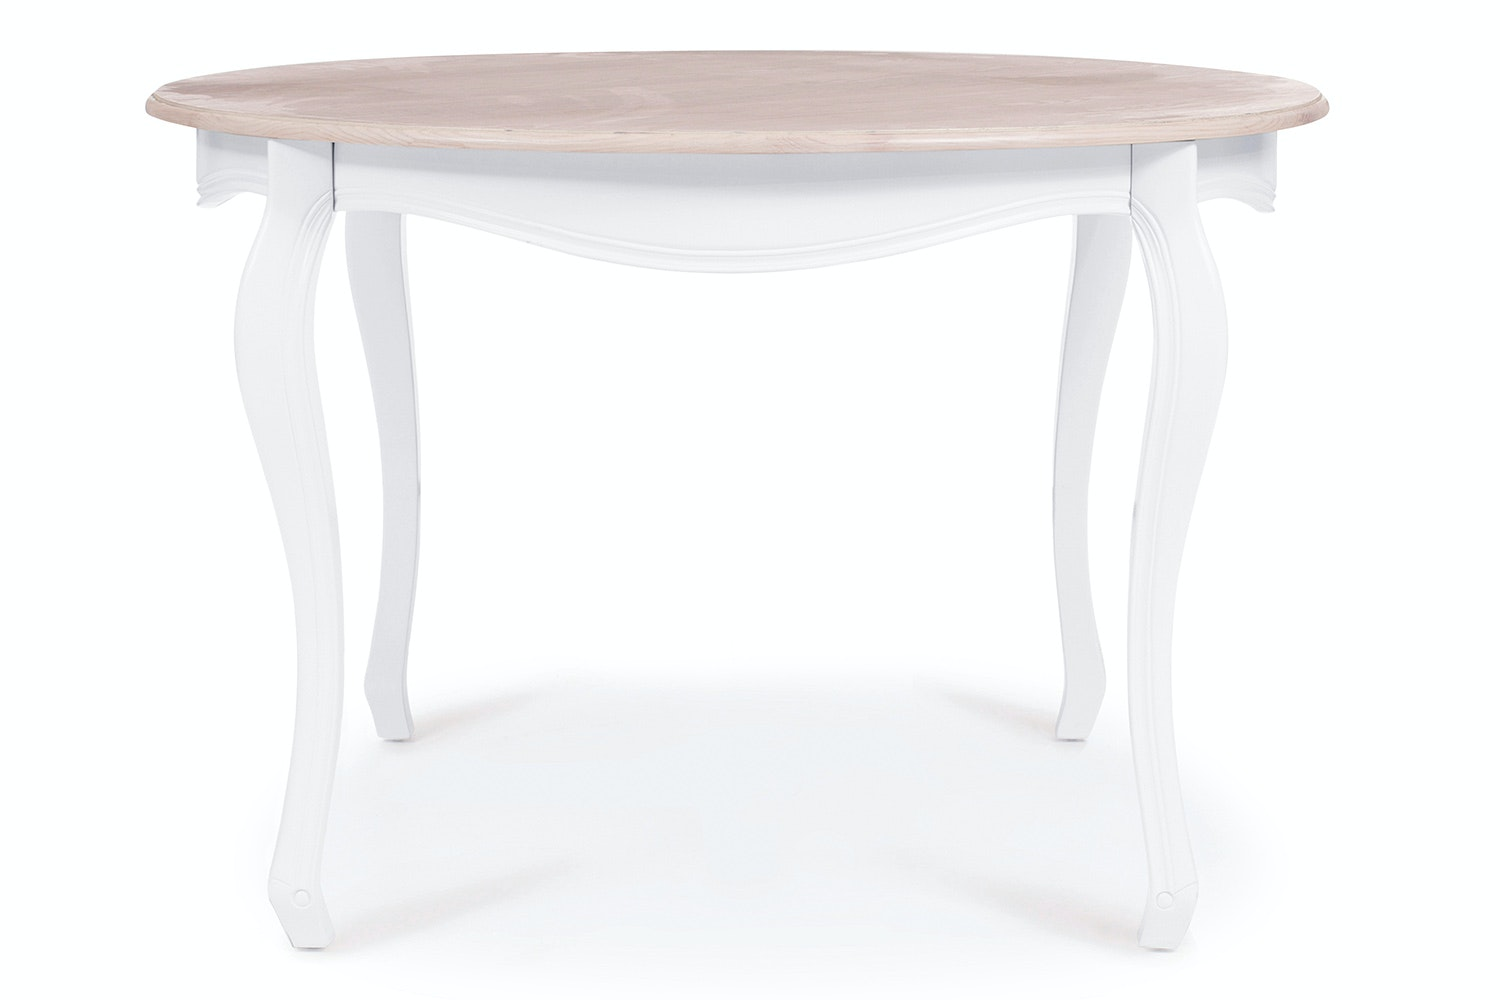 Bouvard Round Dining Table | Colourtrend